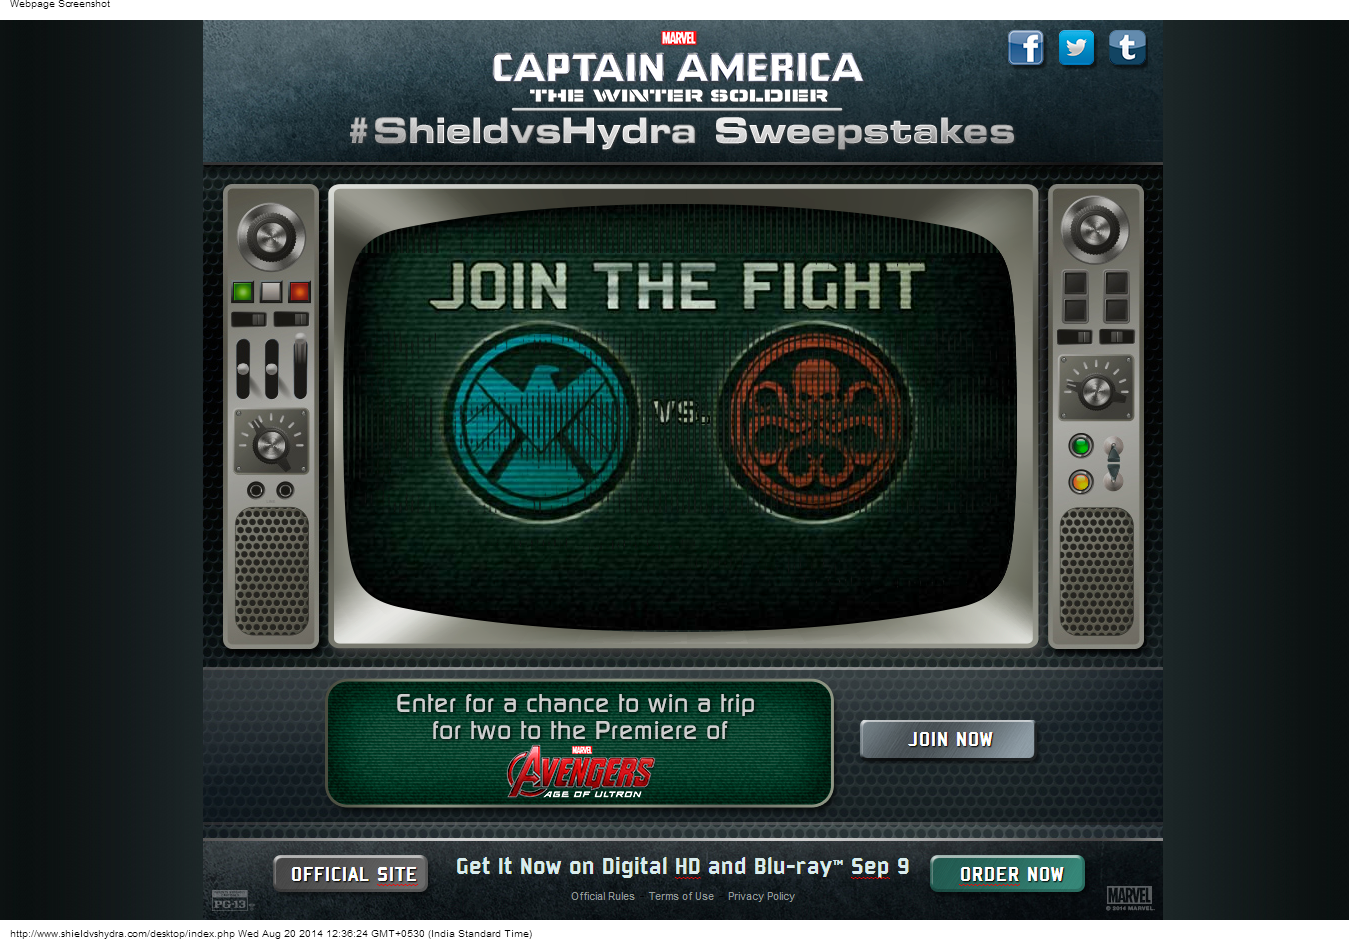 Winter Soldier'/'Avengers 2 Viral Site